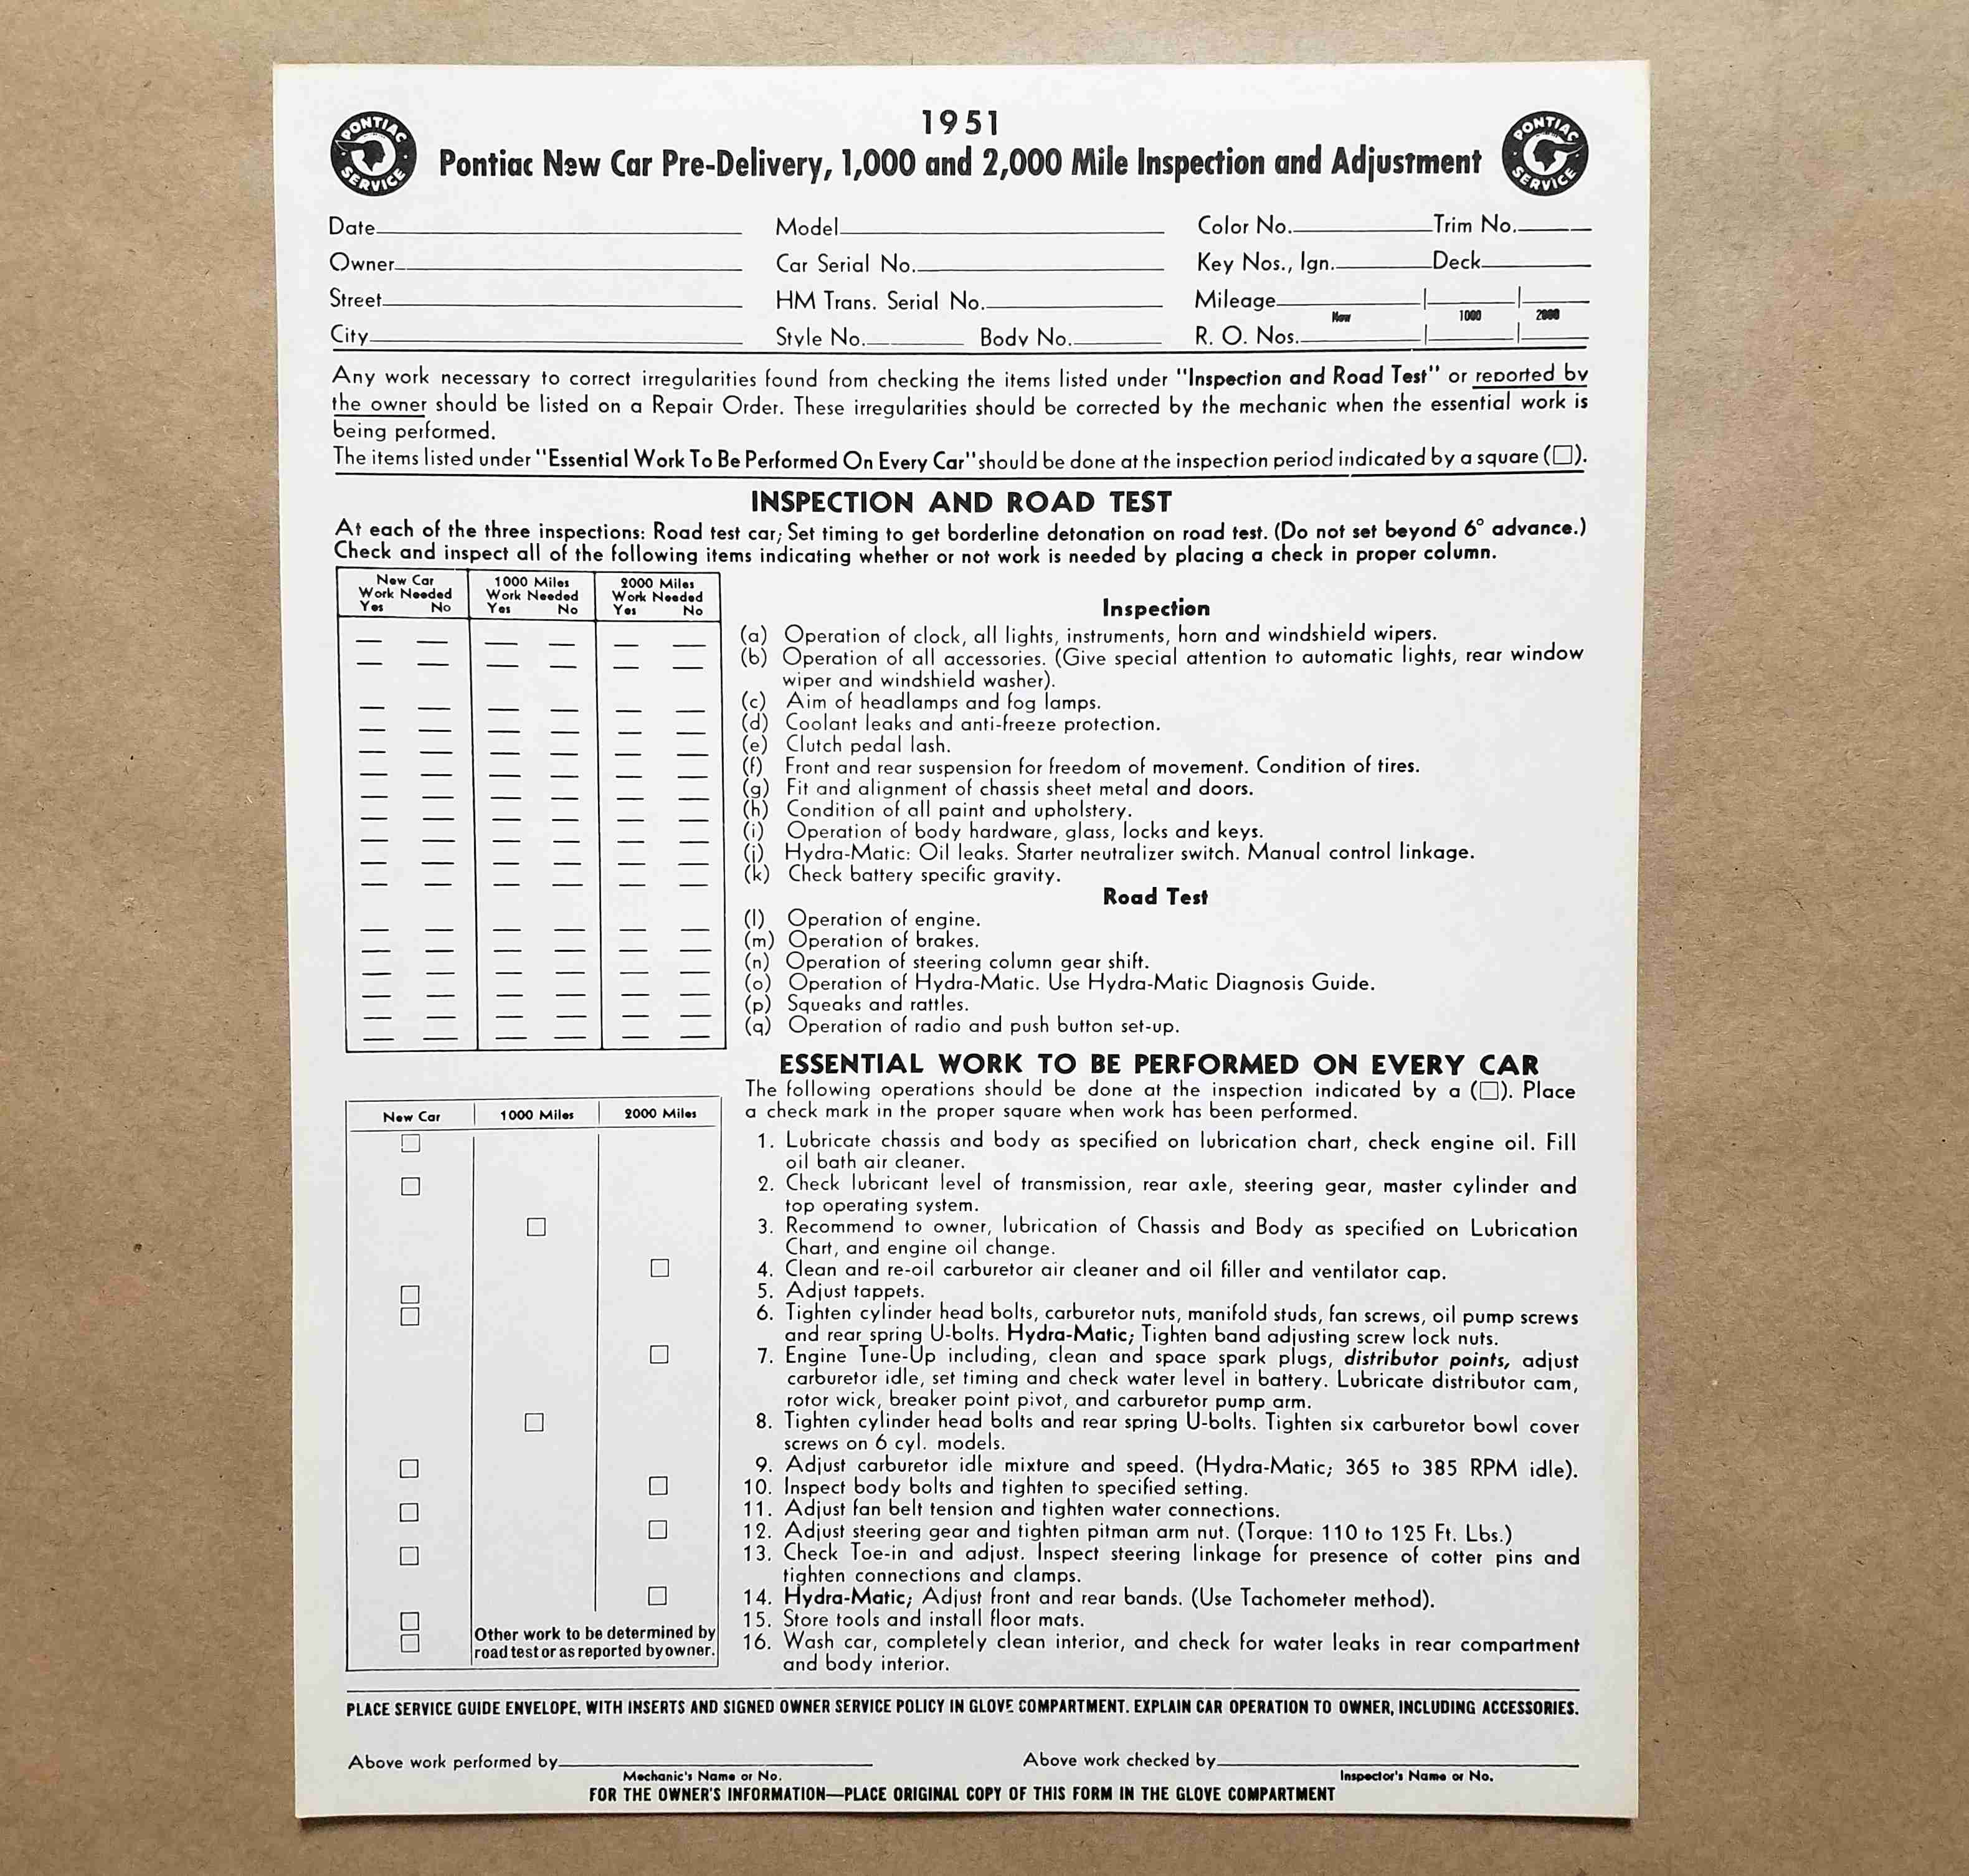 1951 New Vehicle Pre-Delivery Sheet